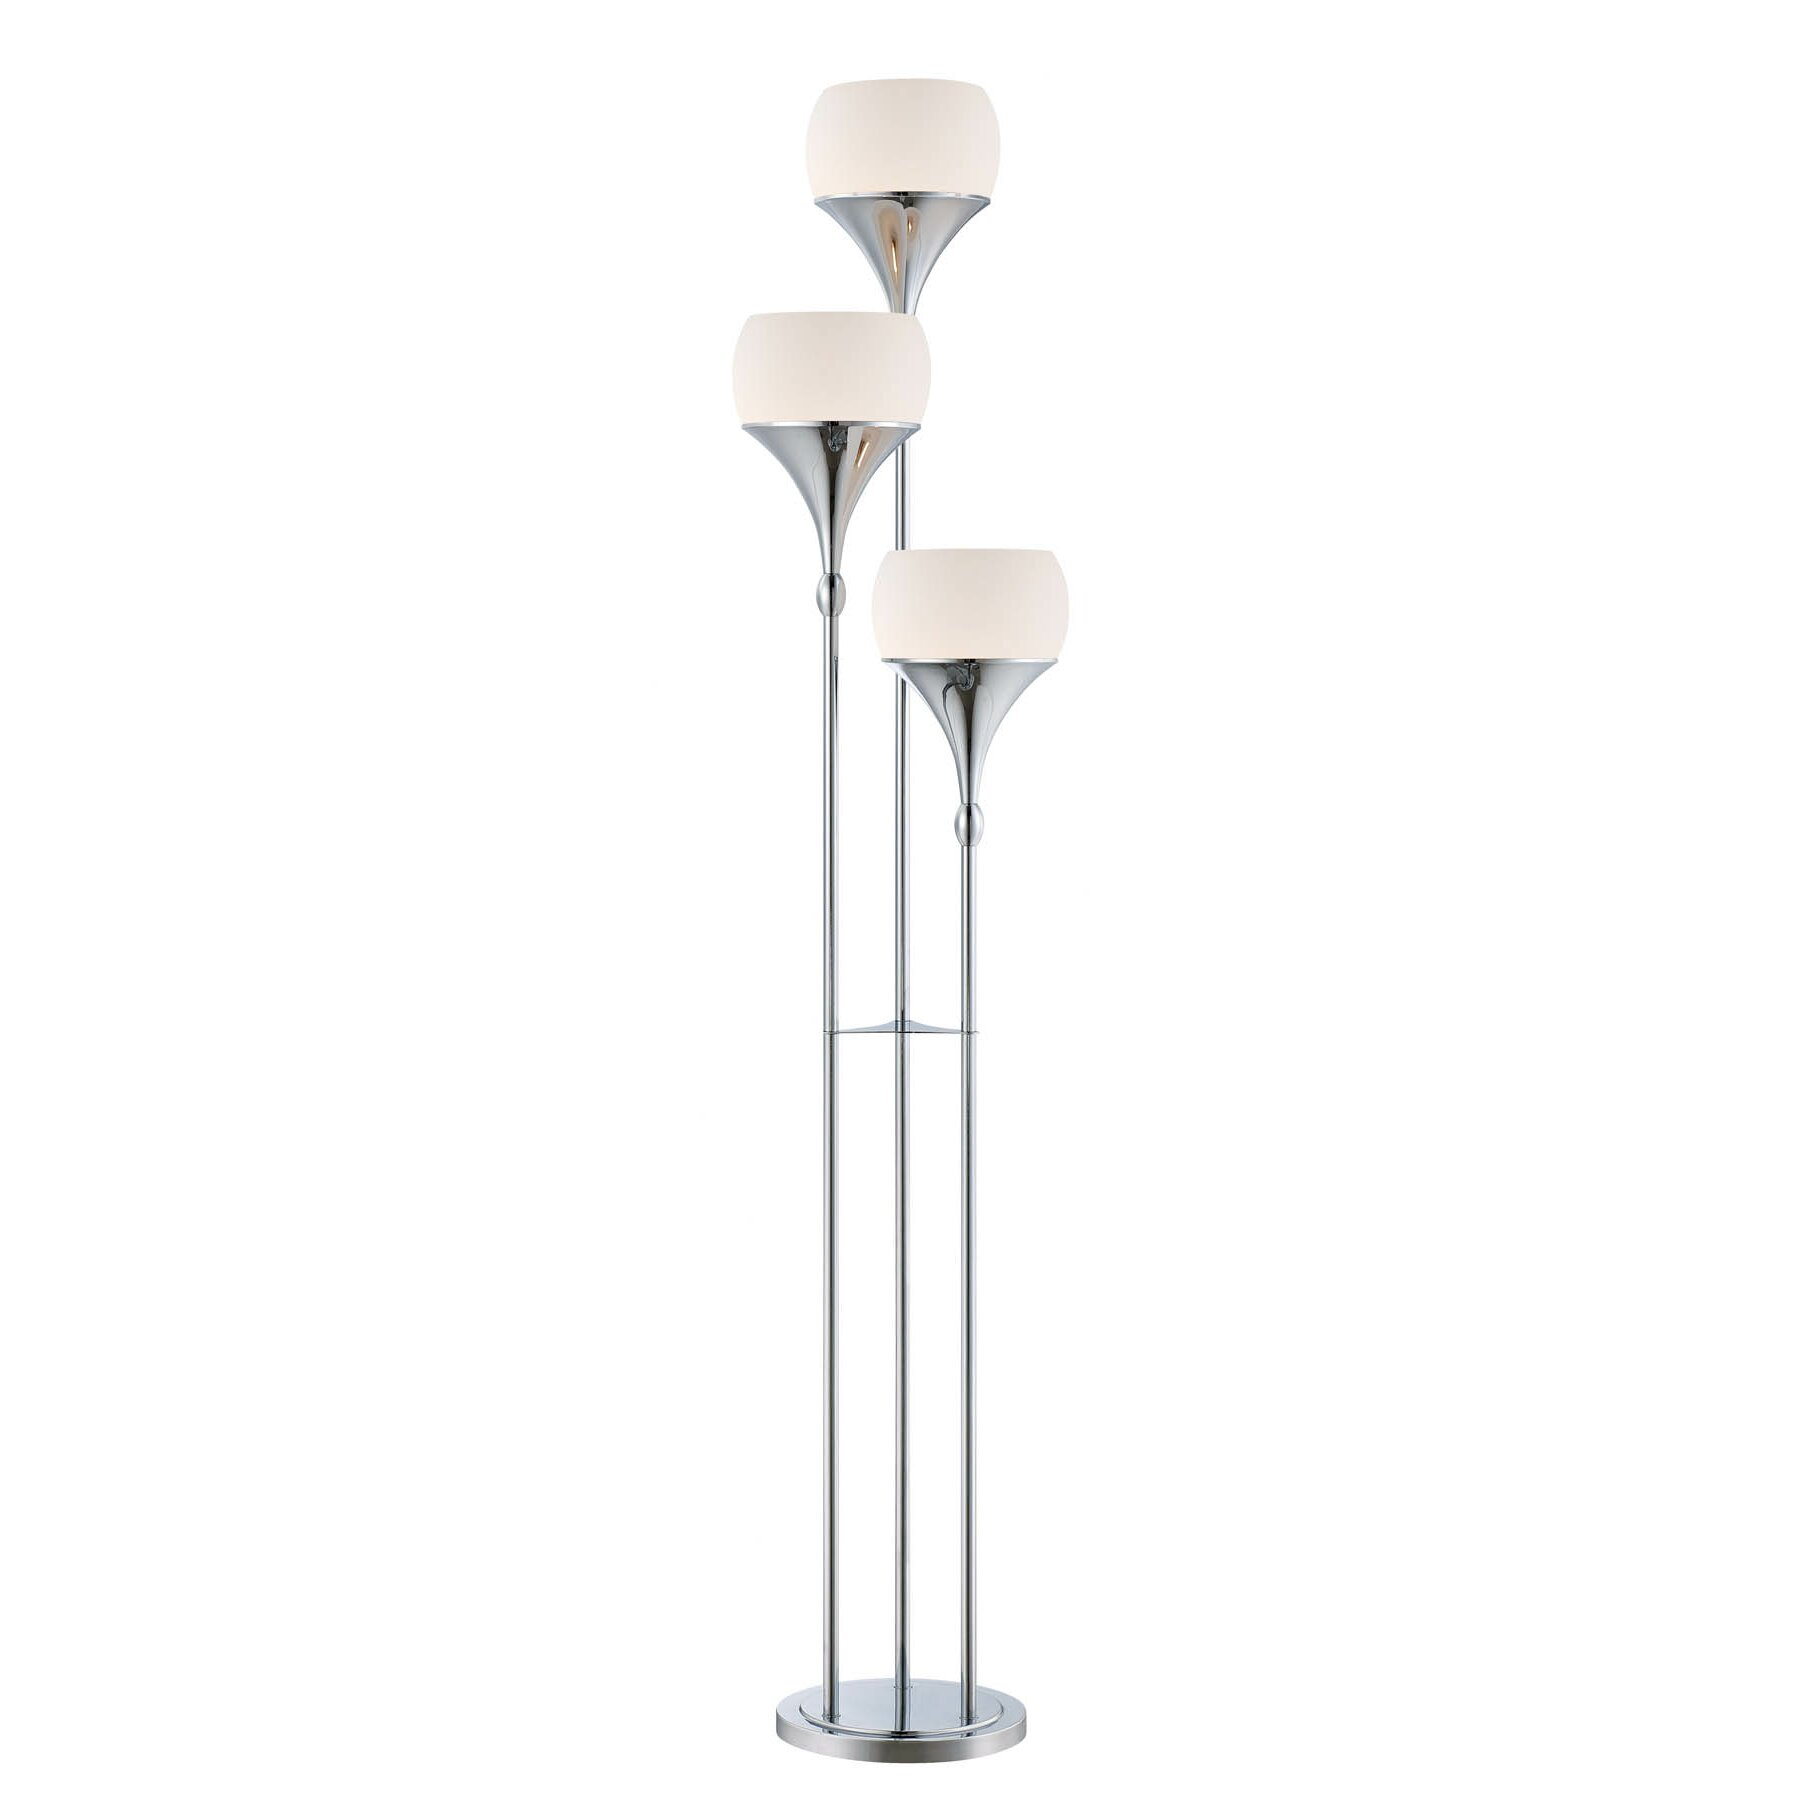 lite source celestel 65quot torchiere floor lamp reviews With lite source celestel 3 light floor lamp